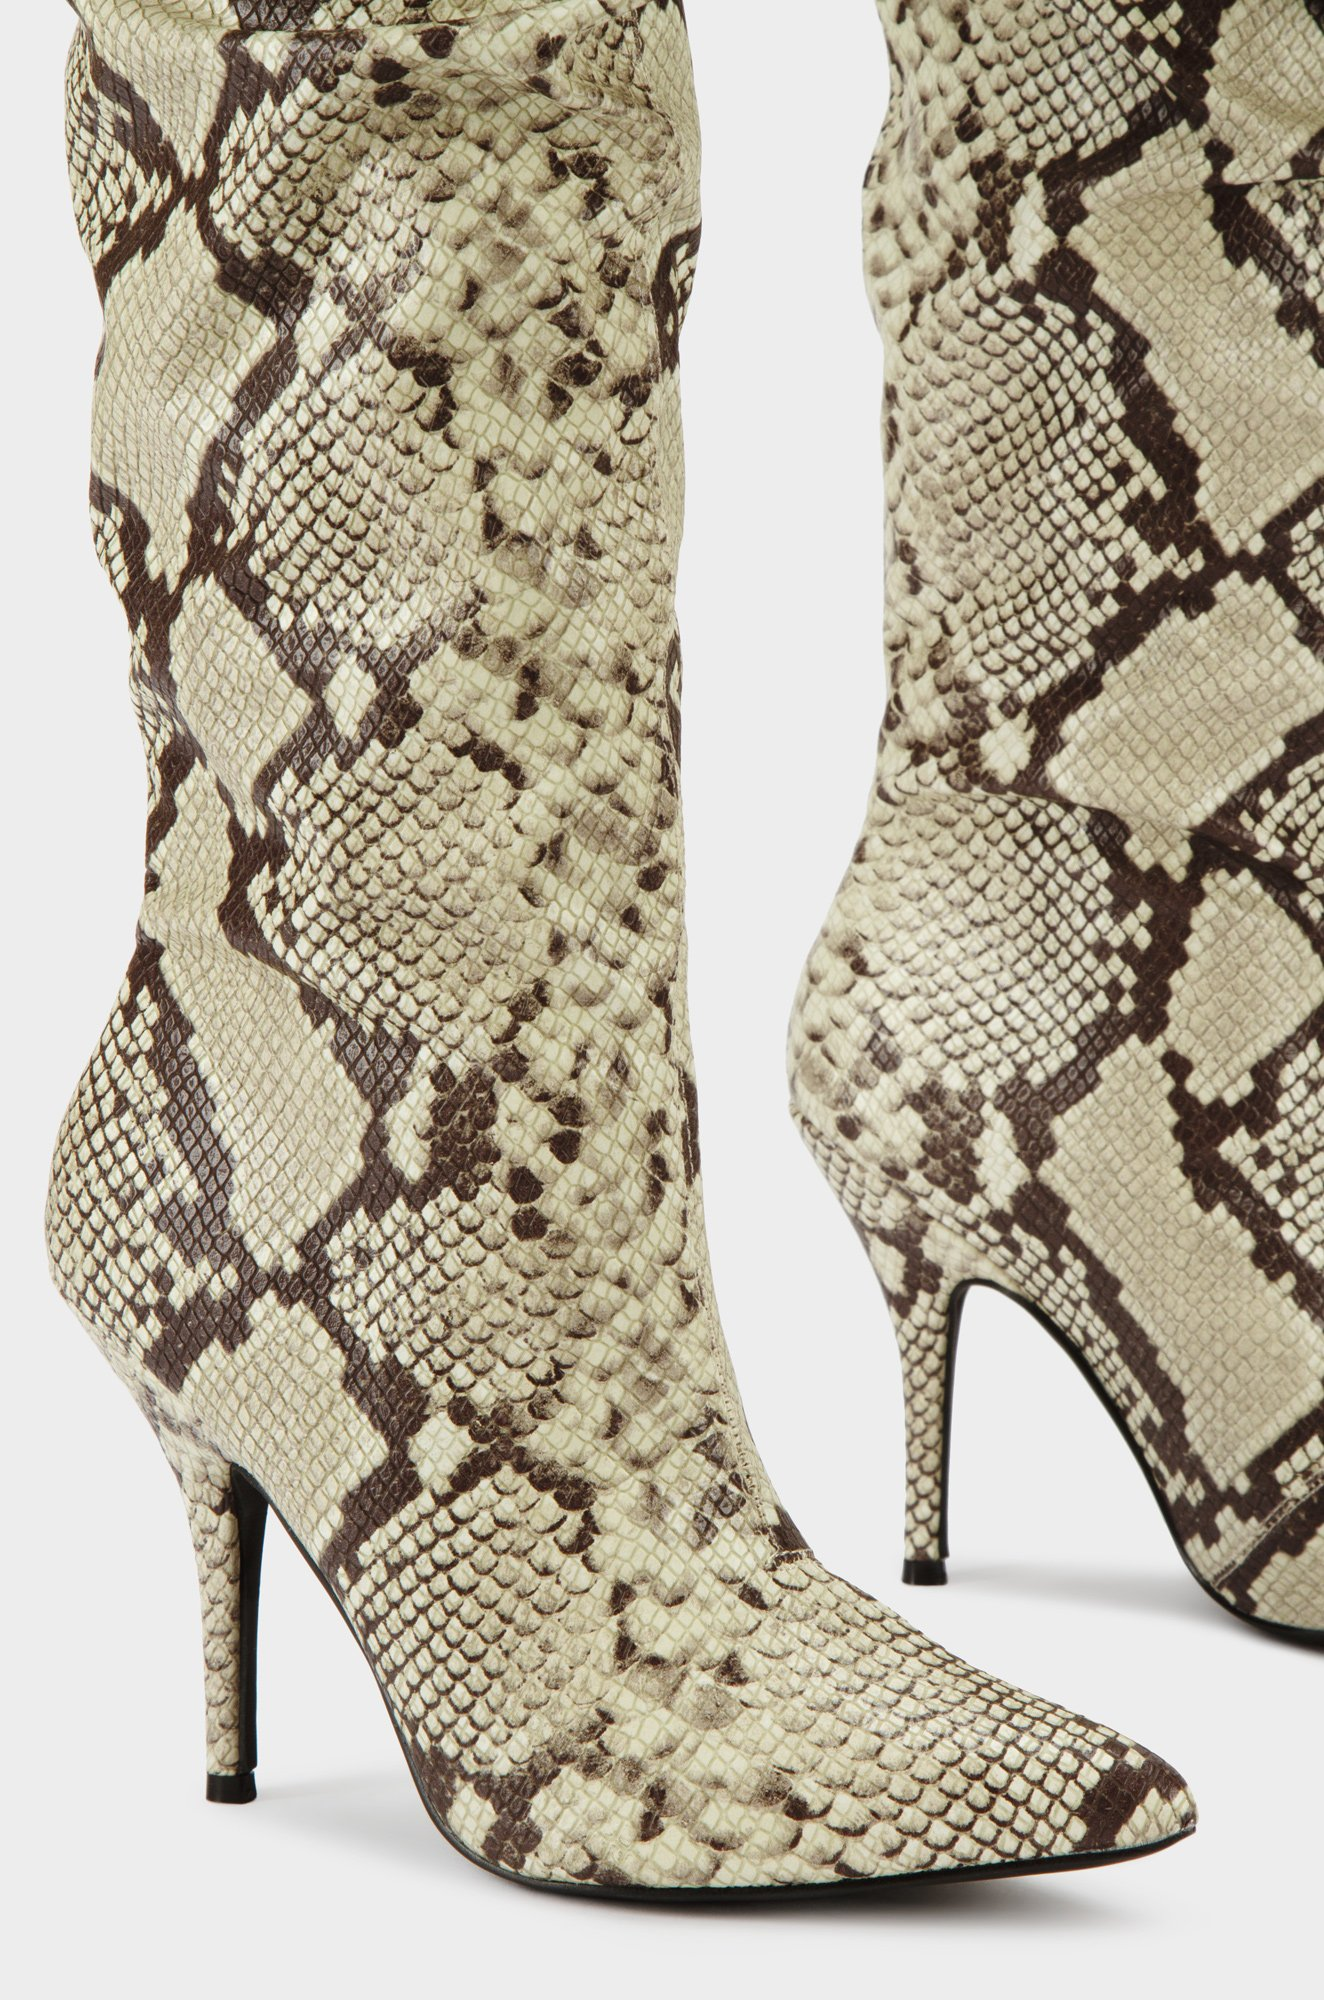 Cape-Robbin-Bown-Snake-Thigh-High-Slouch-Pointed-Toe-Over-The-Knee-Stiletto-Boot thumbnail 18